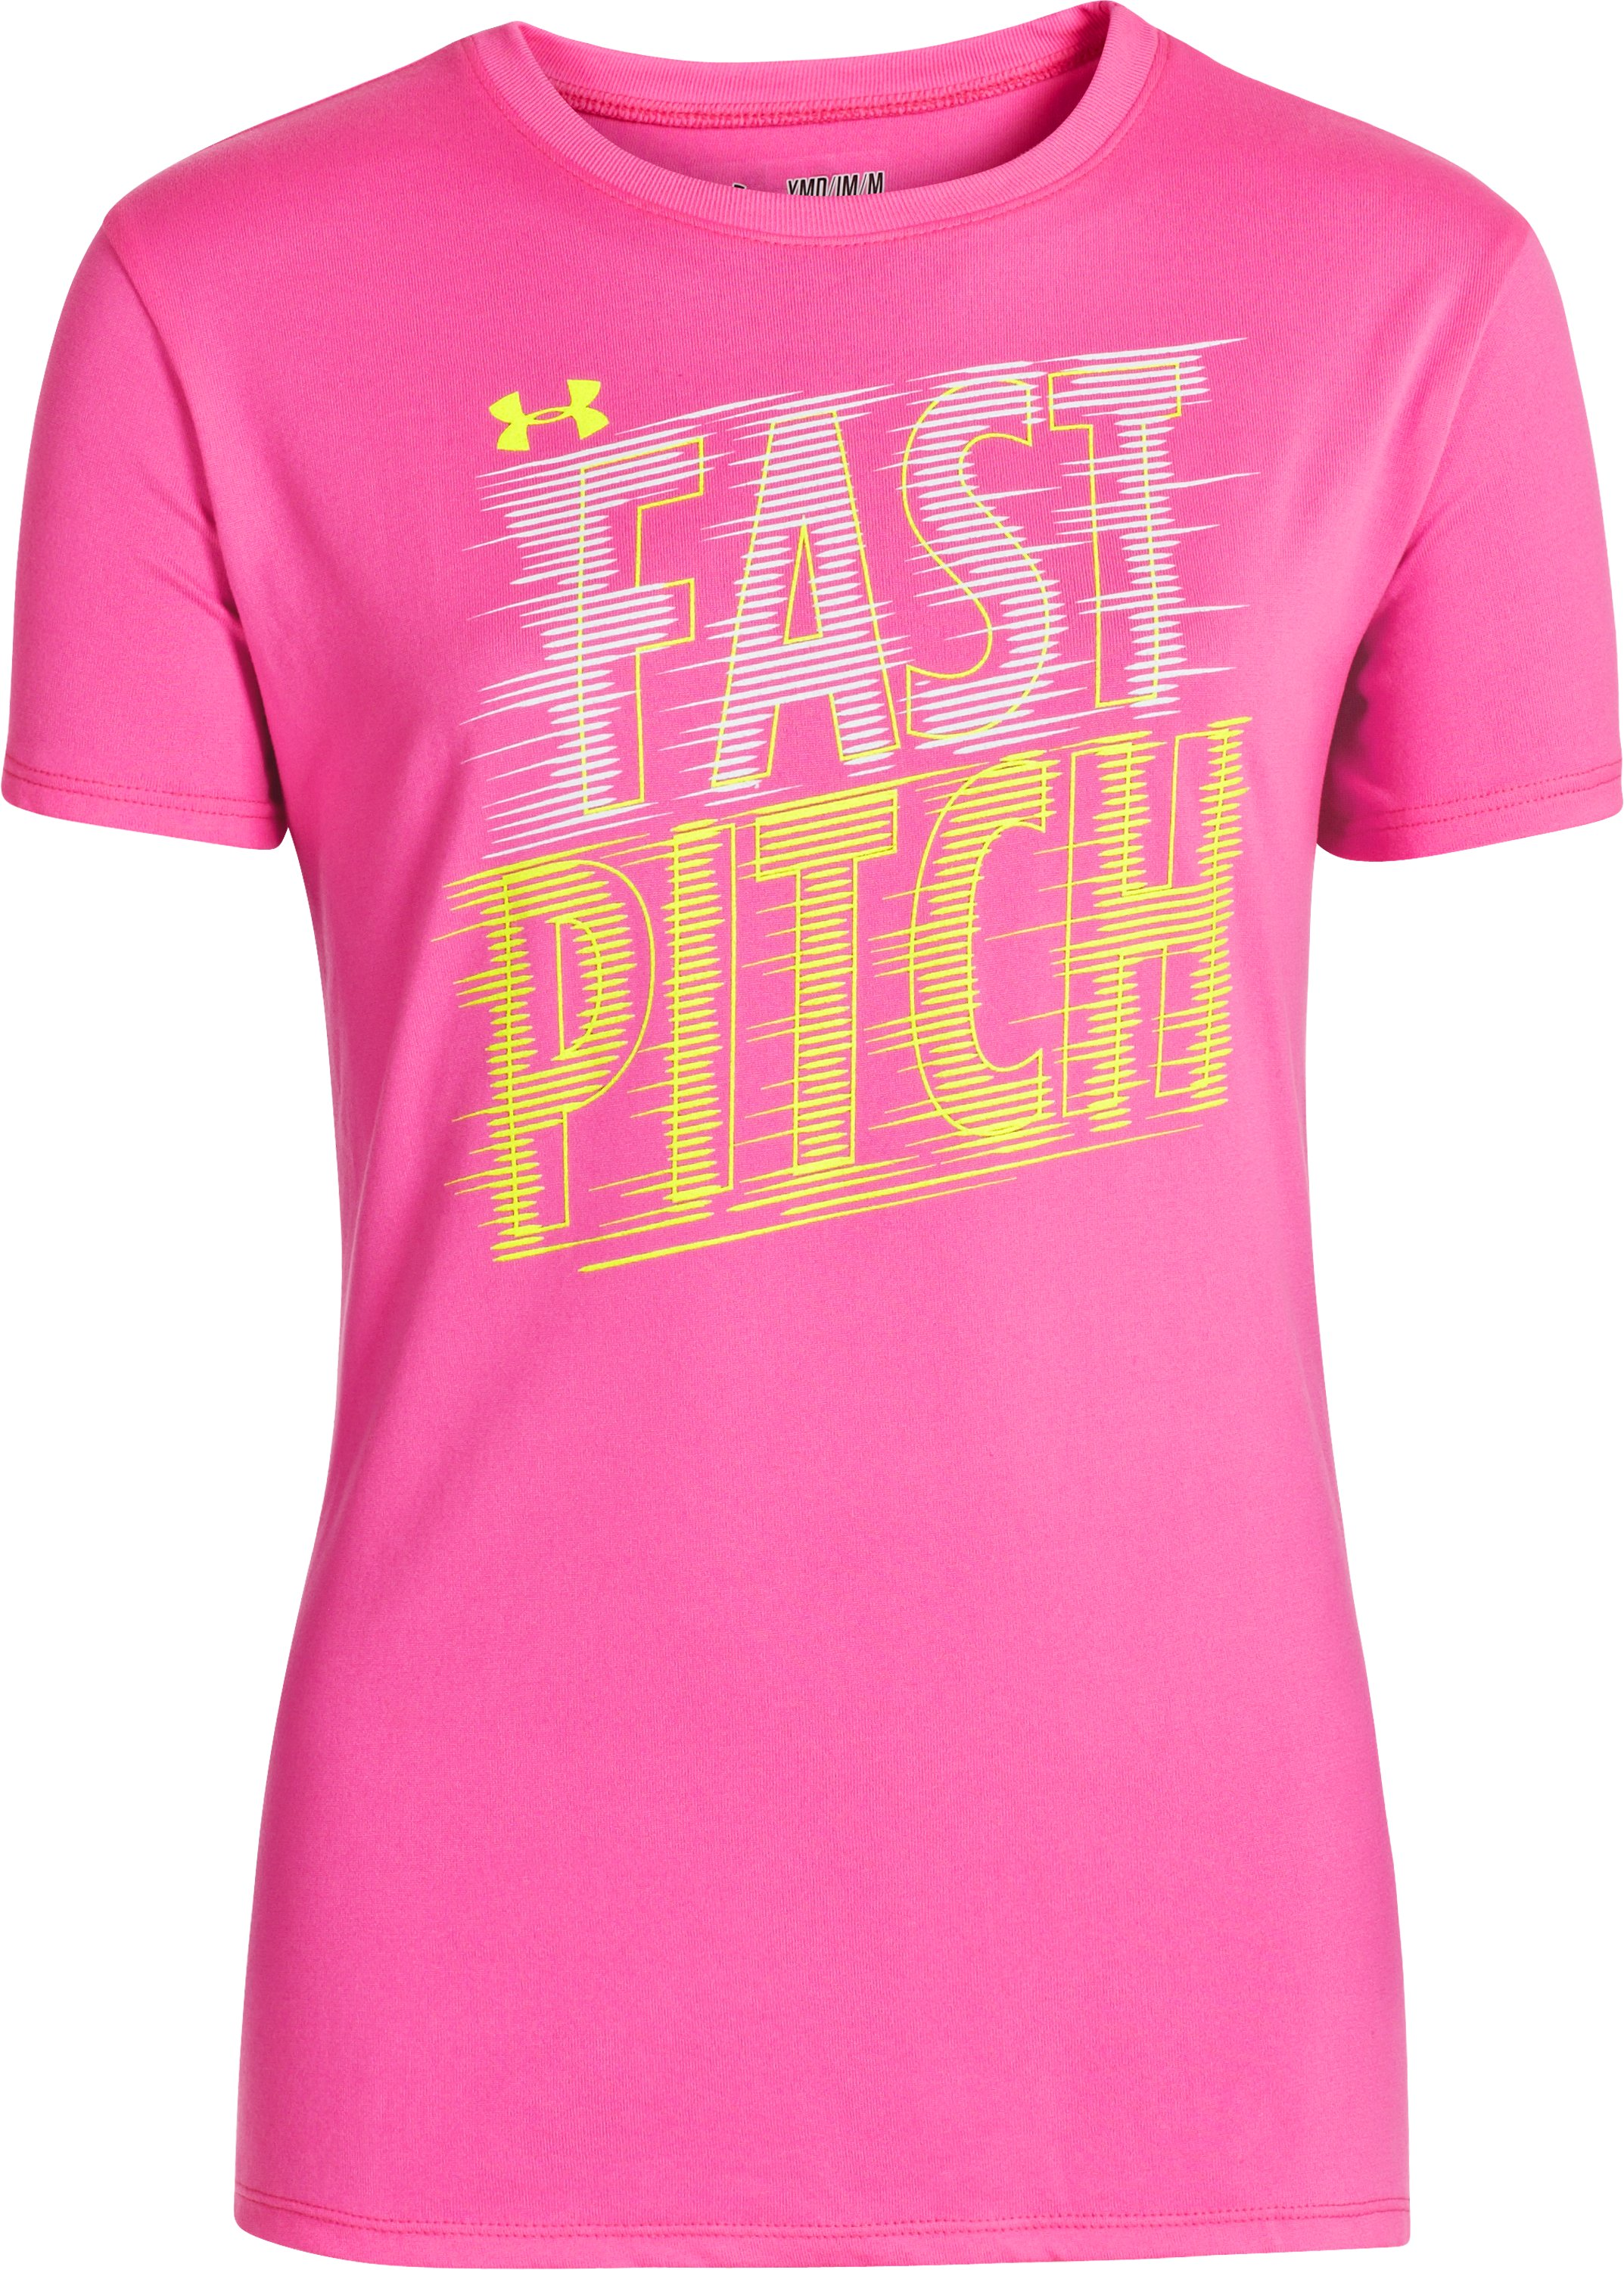 Girls' UA Fast Pitch T-Shirt, CHAOS, zoomed image